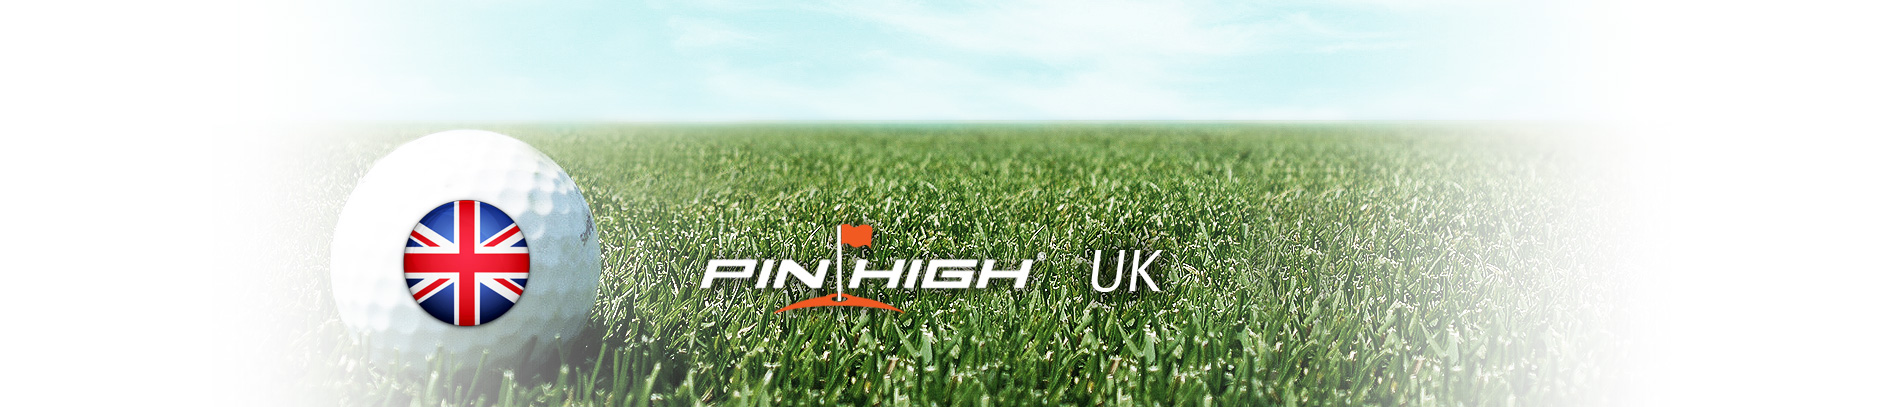 PIN HIGH UK